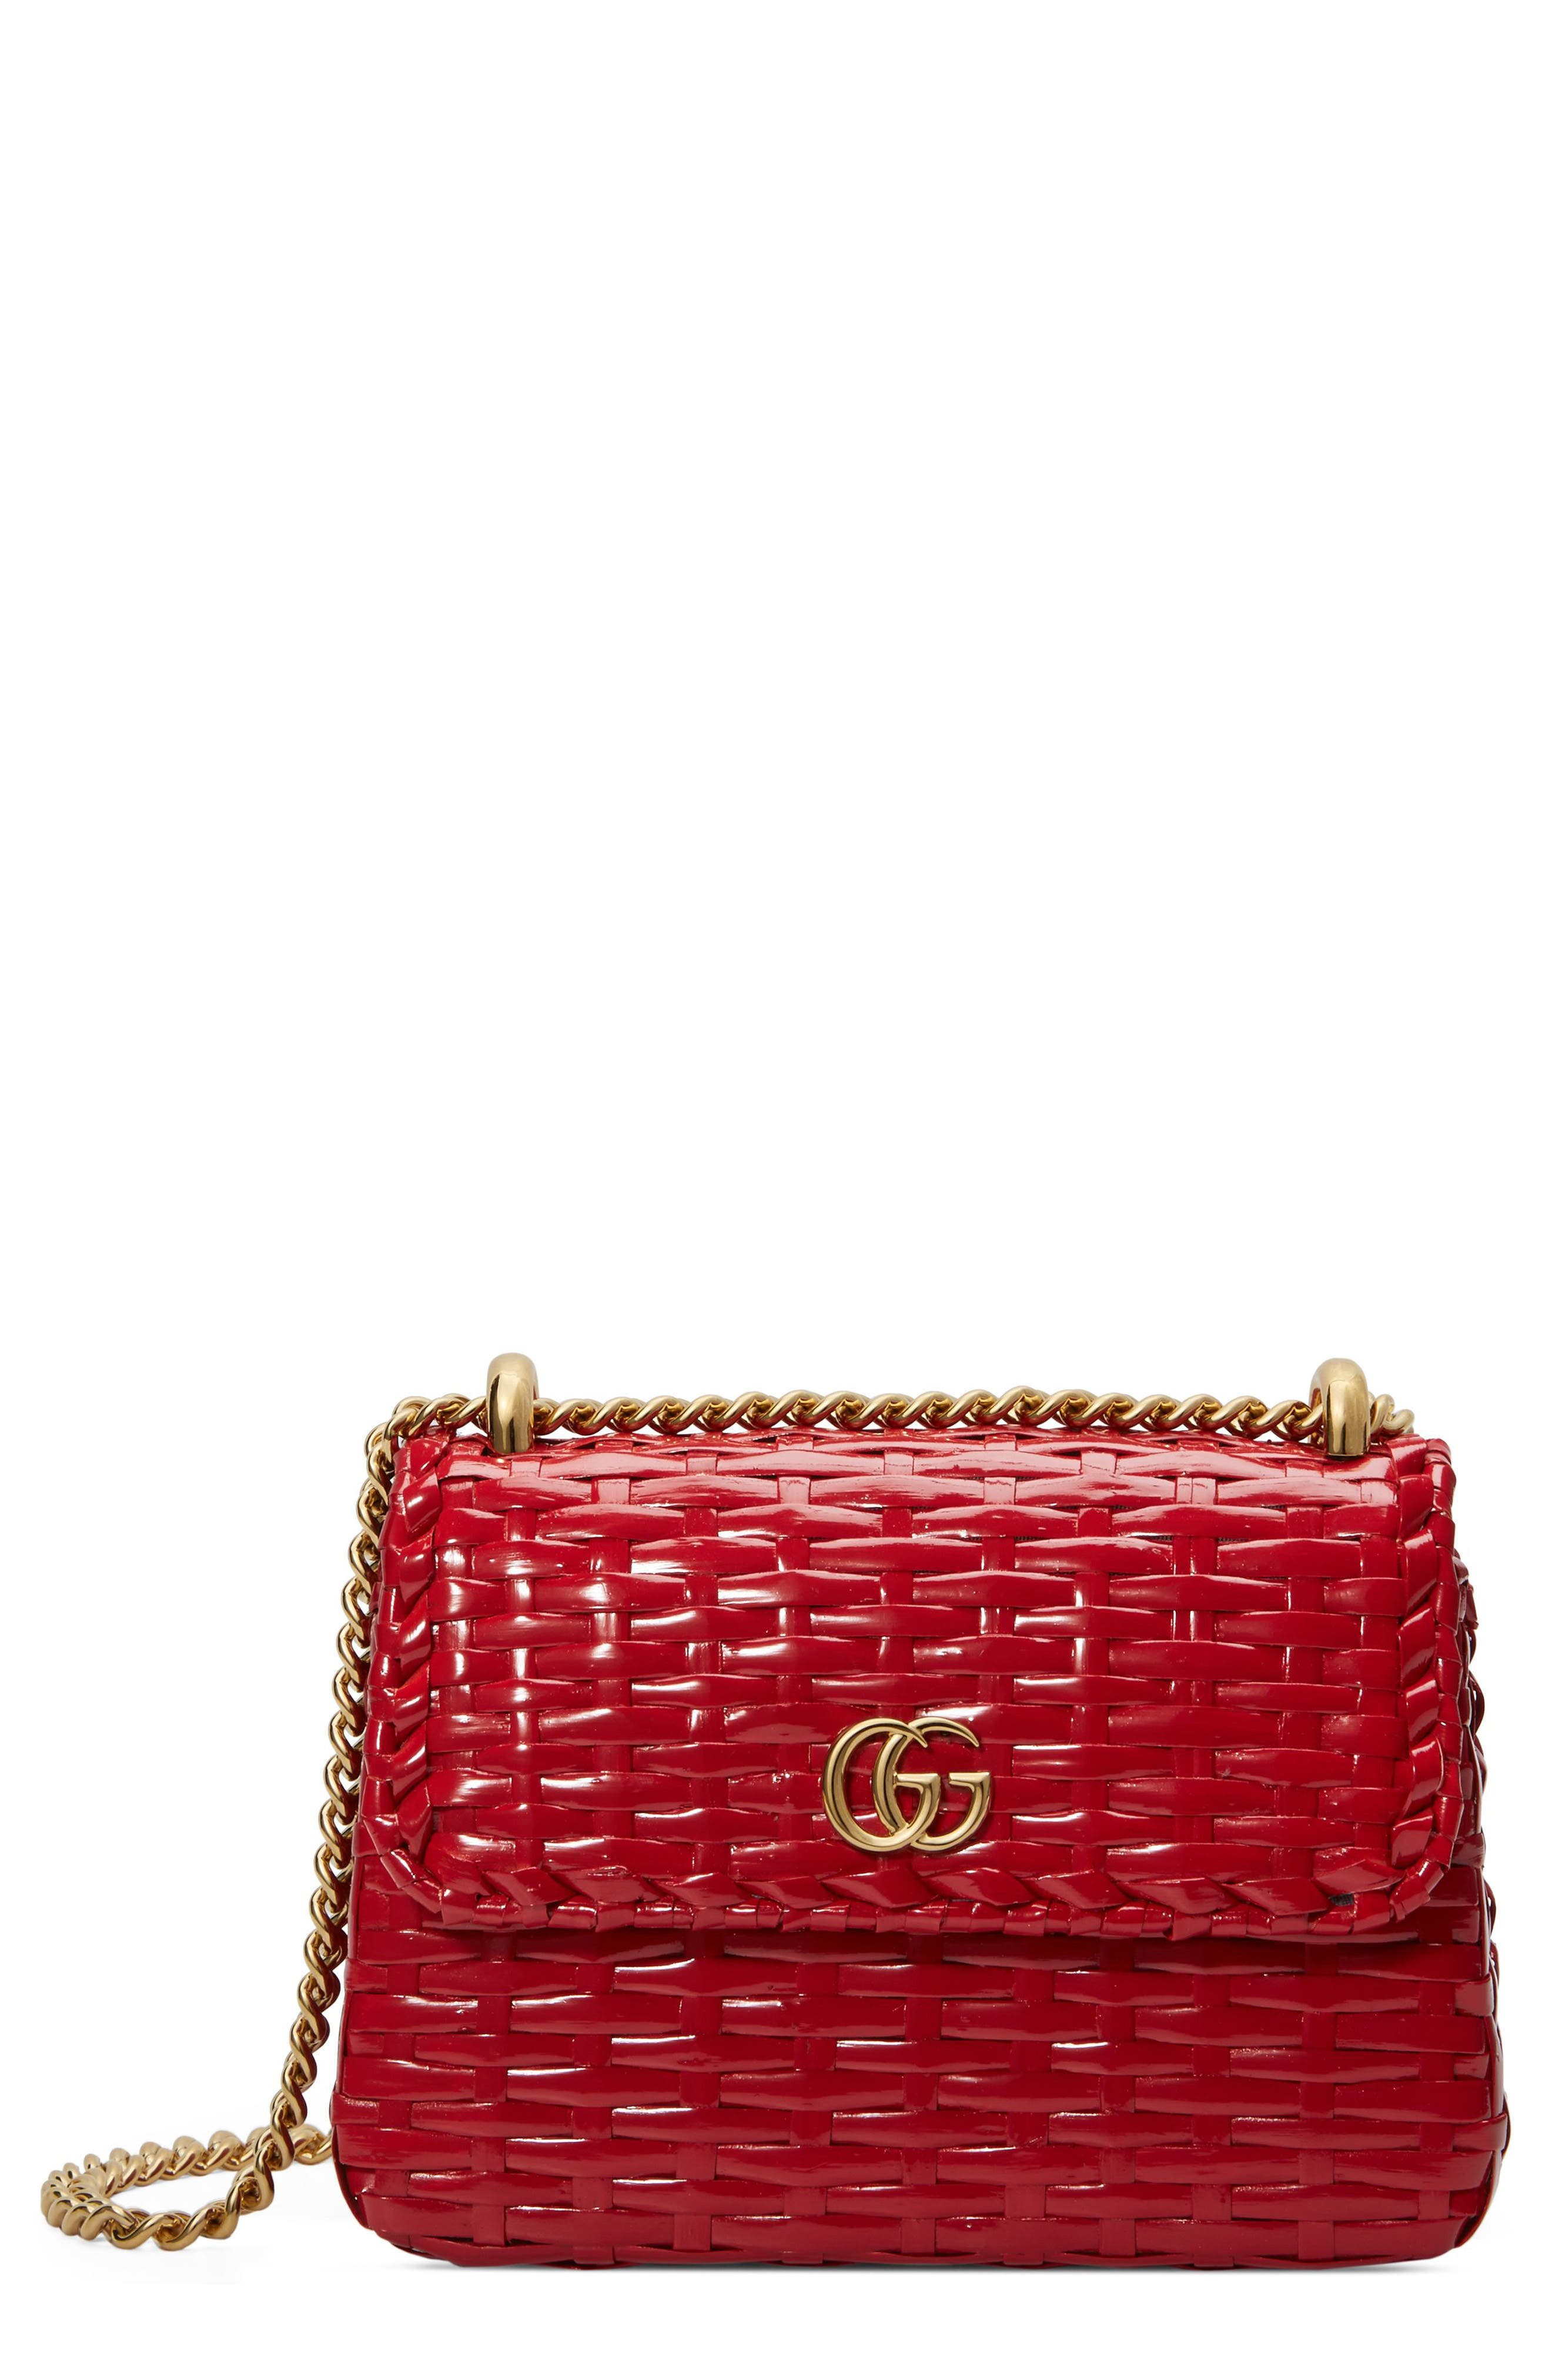 Small Linea Cestino Glazed Wicker Shoulder Bag,                         Main,                         color, ROSSO